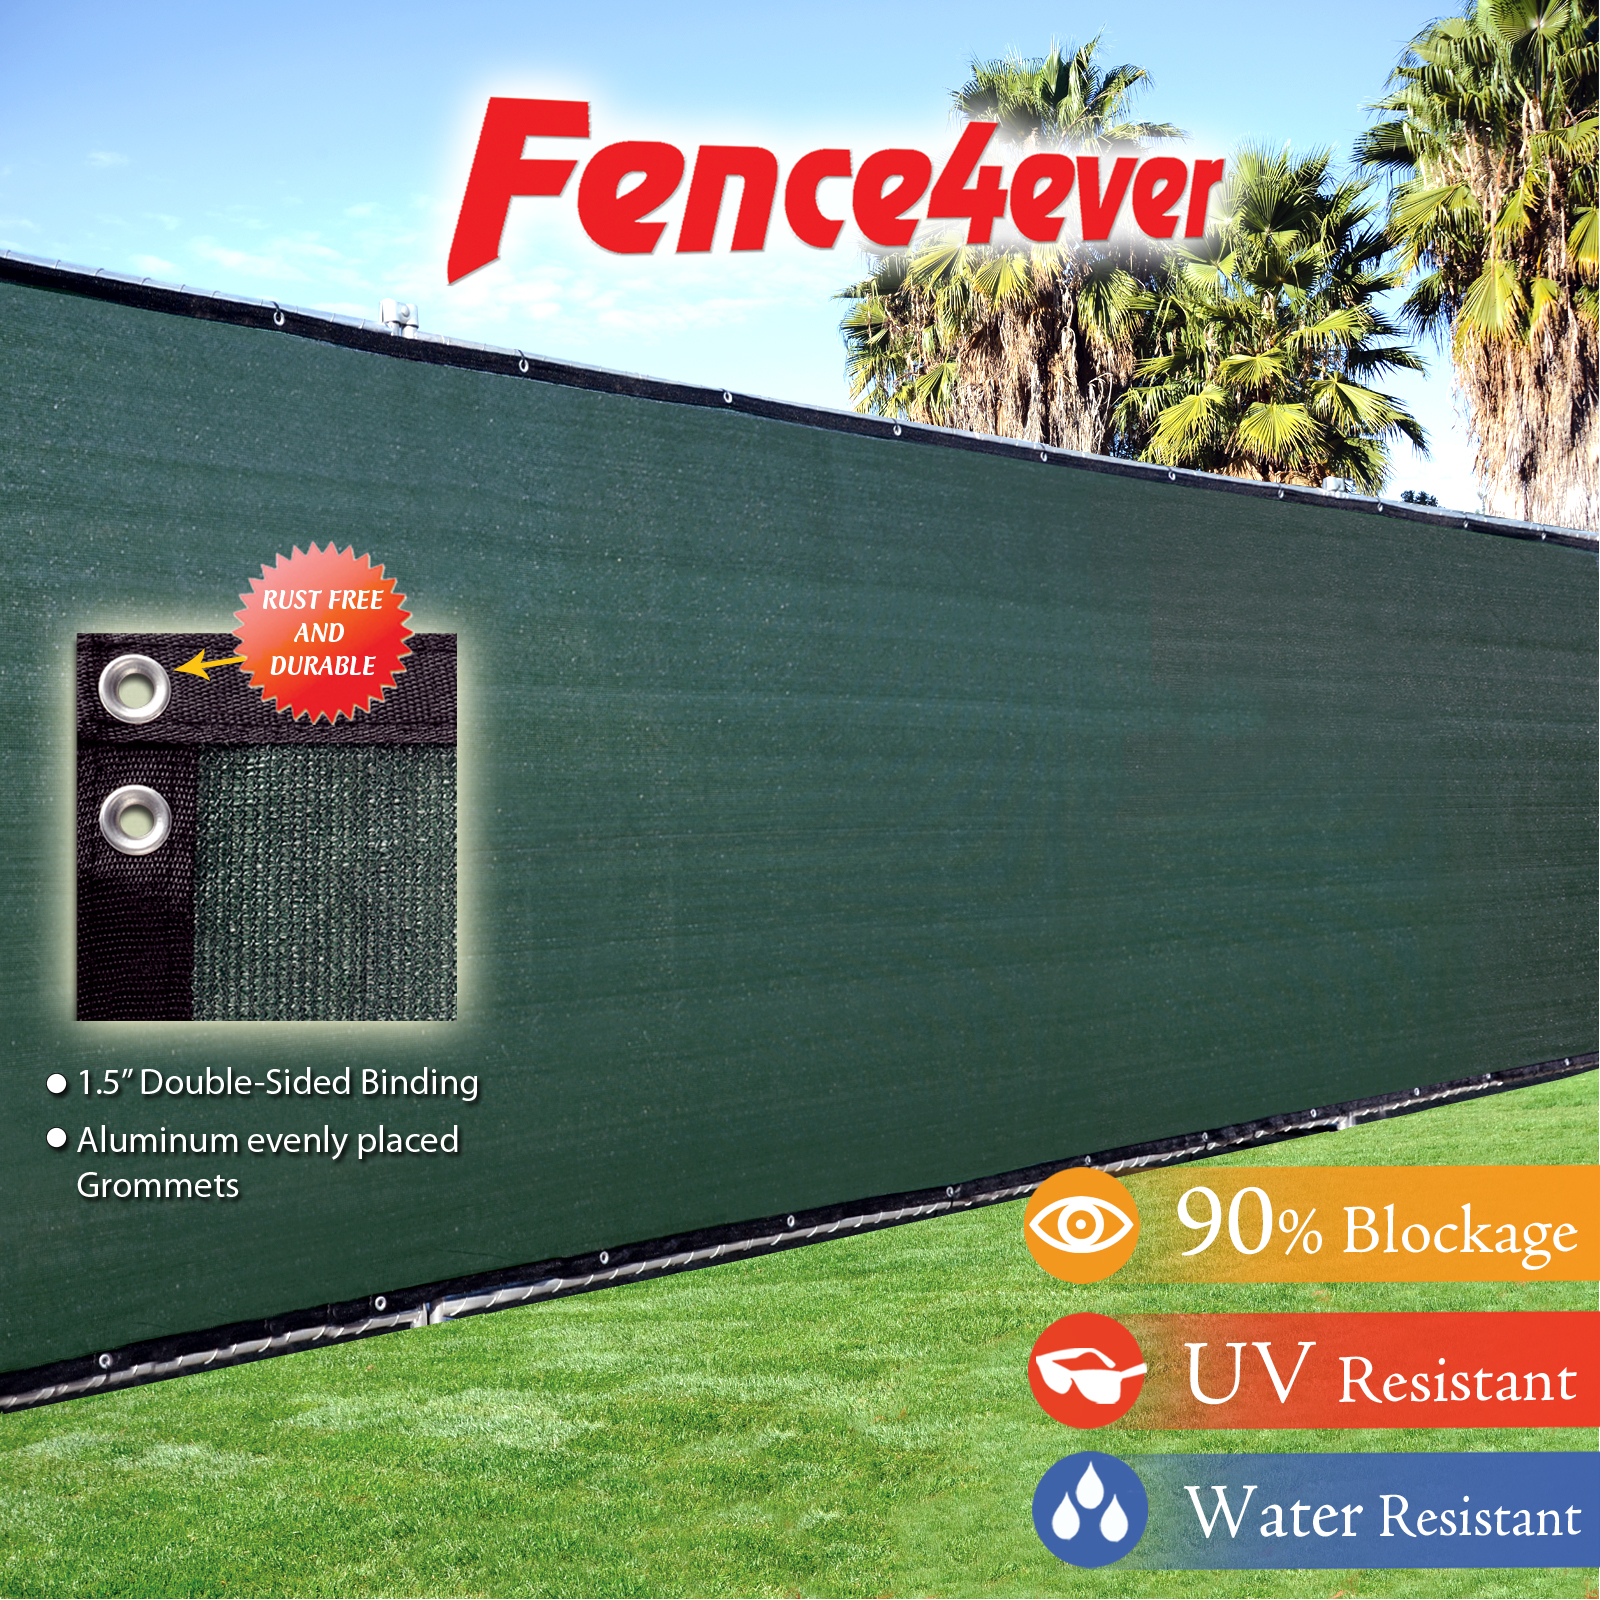 Fence4ever Dark Green 4'x50' Fence Privacy Screen Windscreen Shade Cover Mesh Fabric Tarp